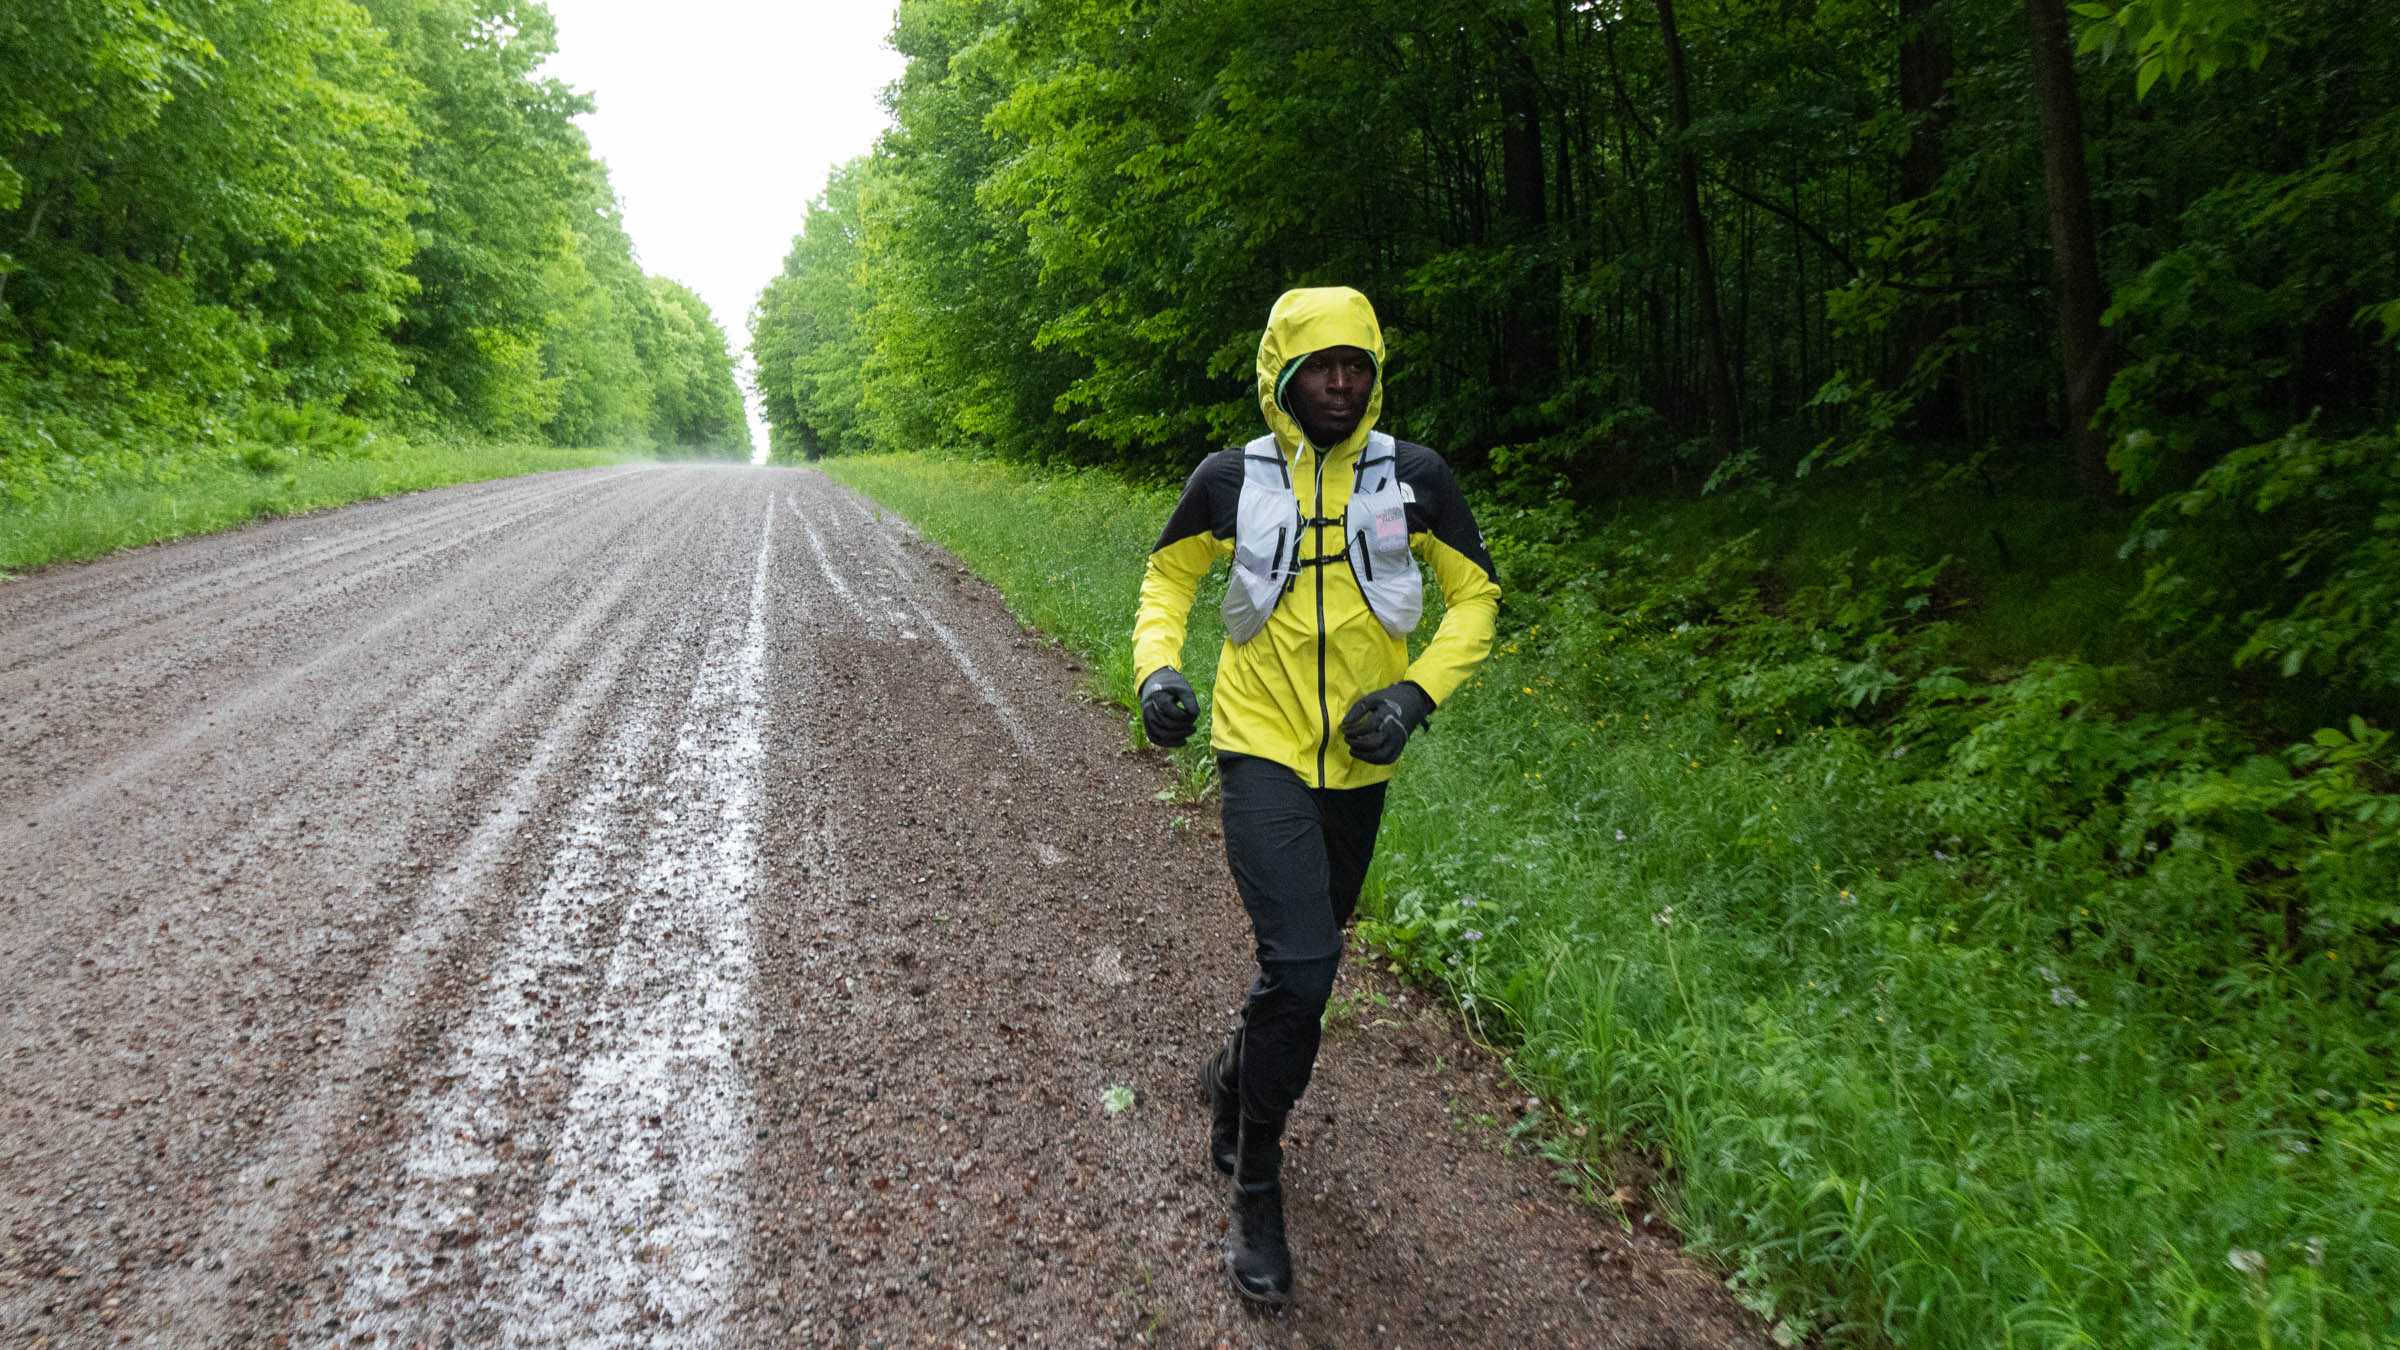 Coree Woltering running on a dirt road in the rain